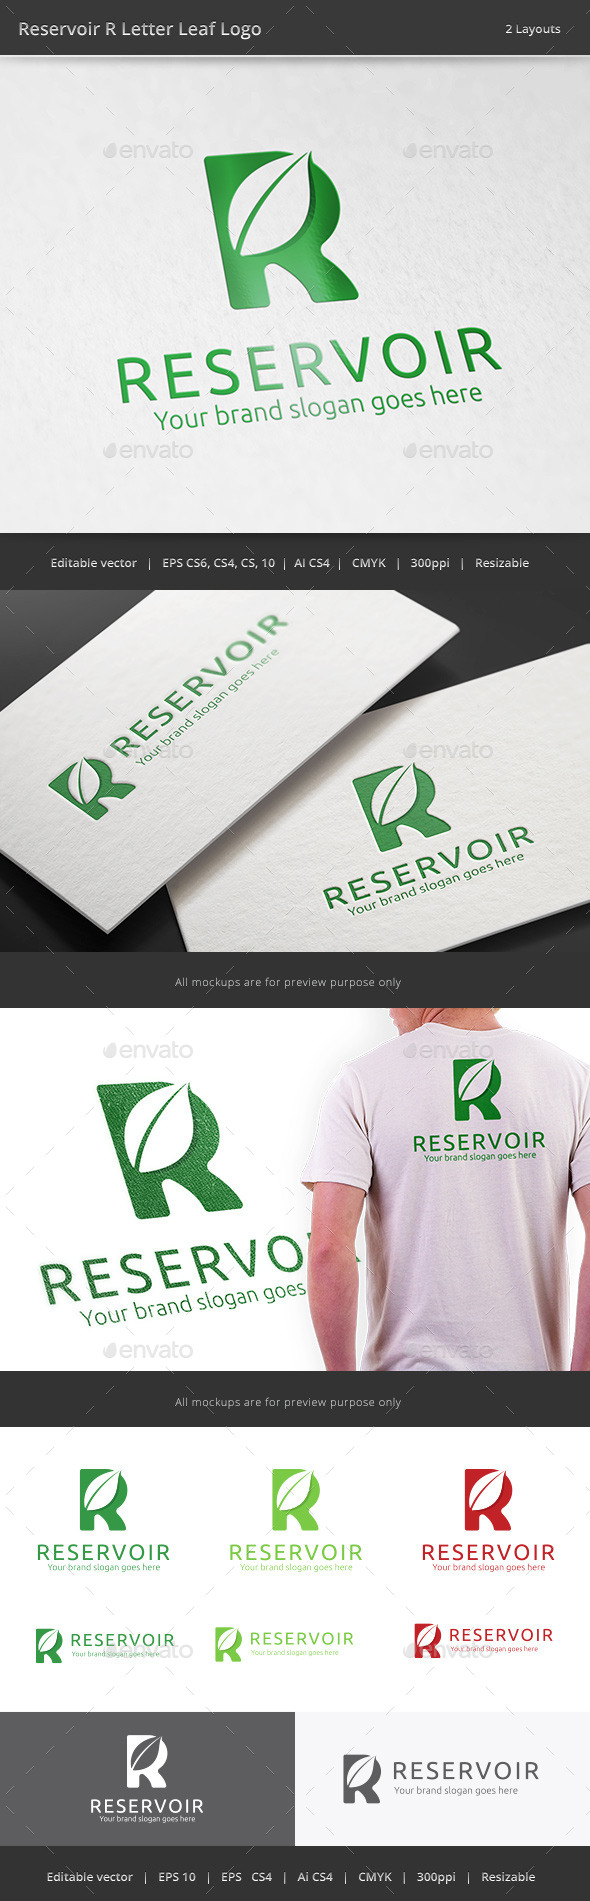 GraphicRiver Reservoir R Letter Leaf Logo 11177492